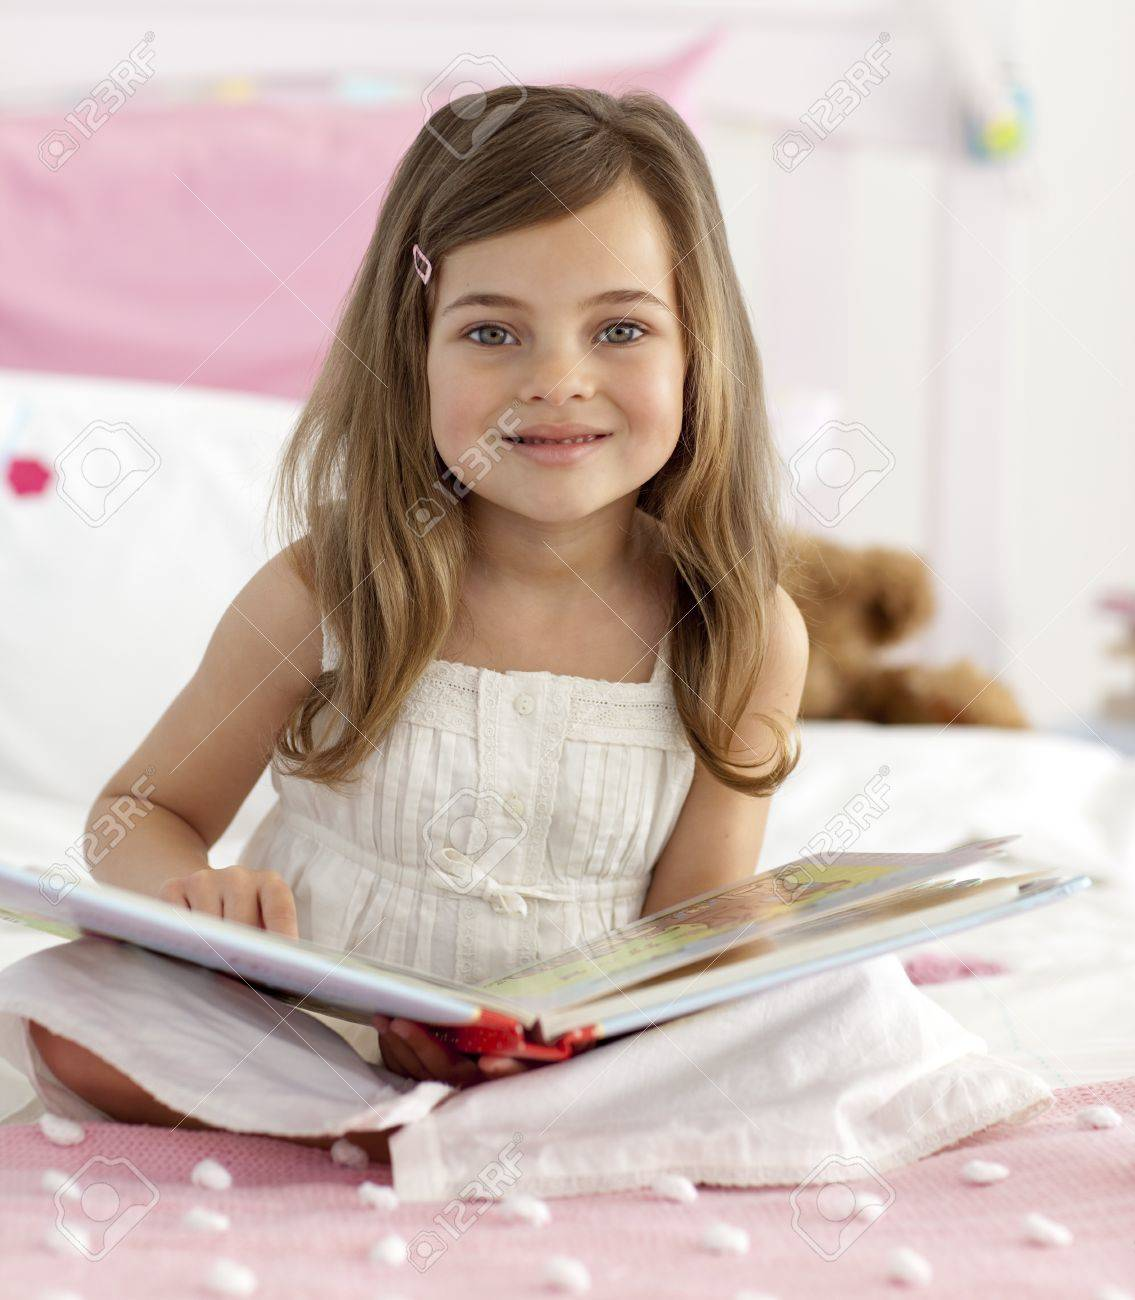 Smiling little girl reading in bed Stock Photo - 10244865